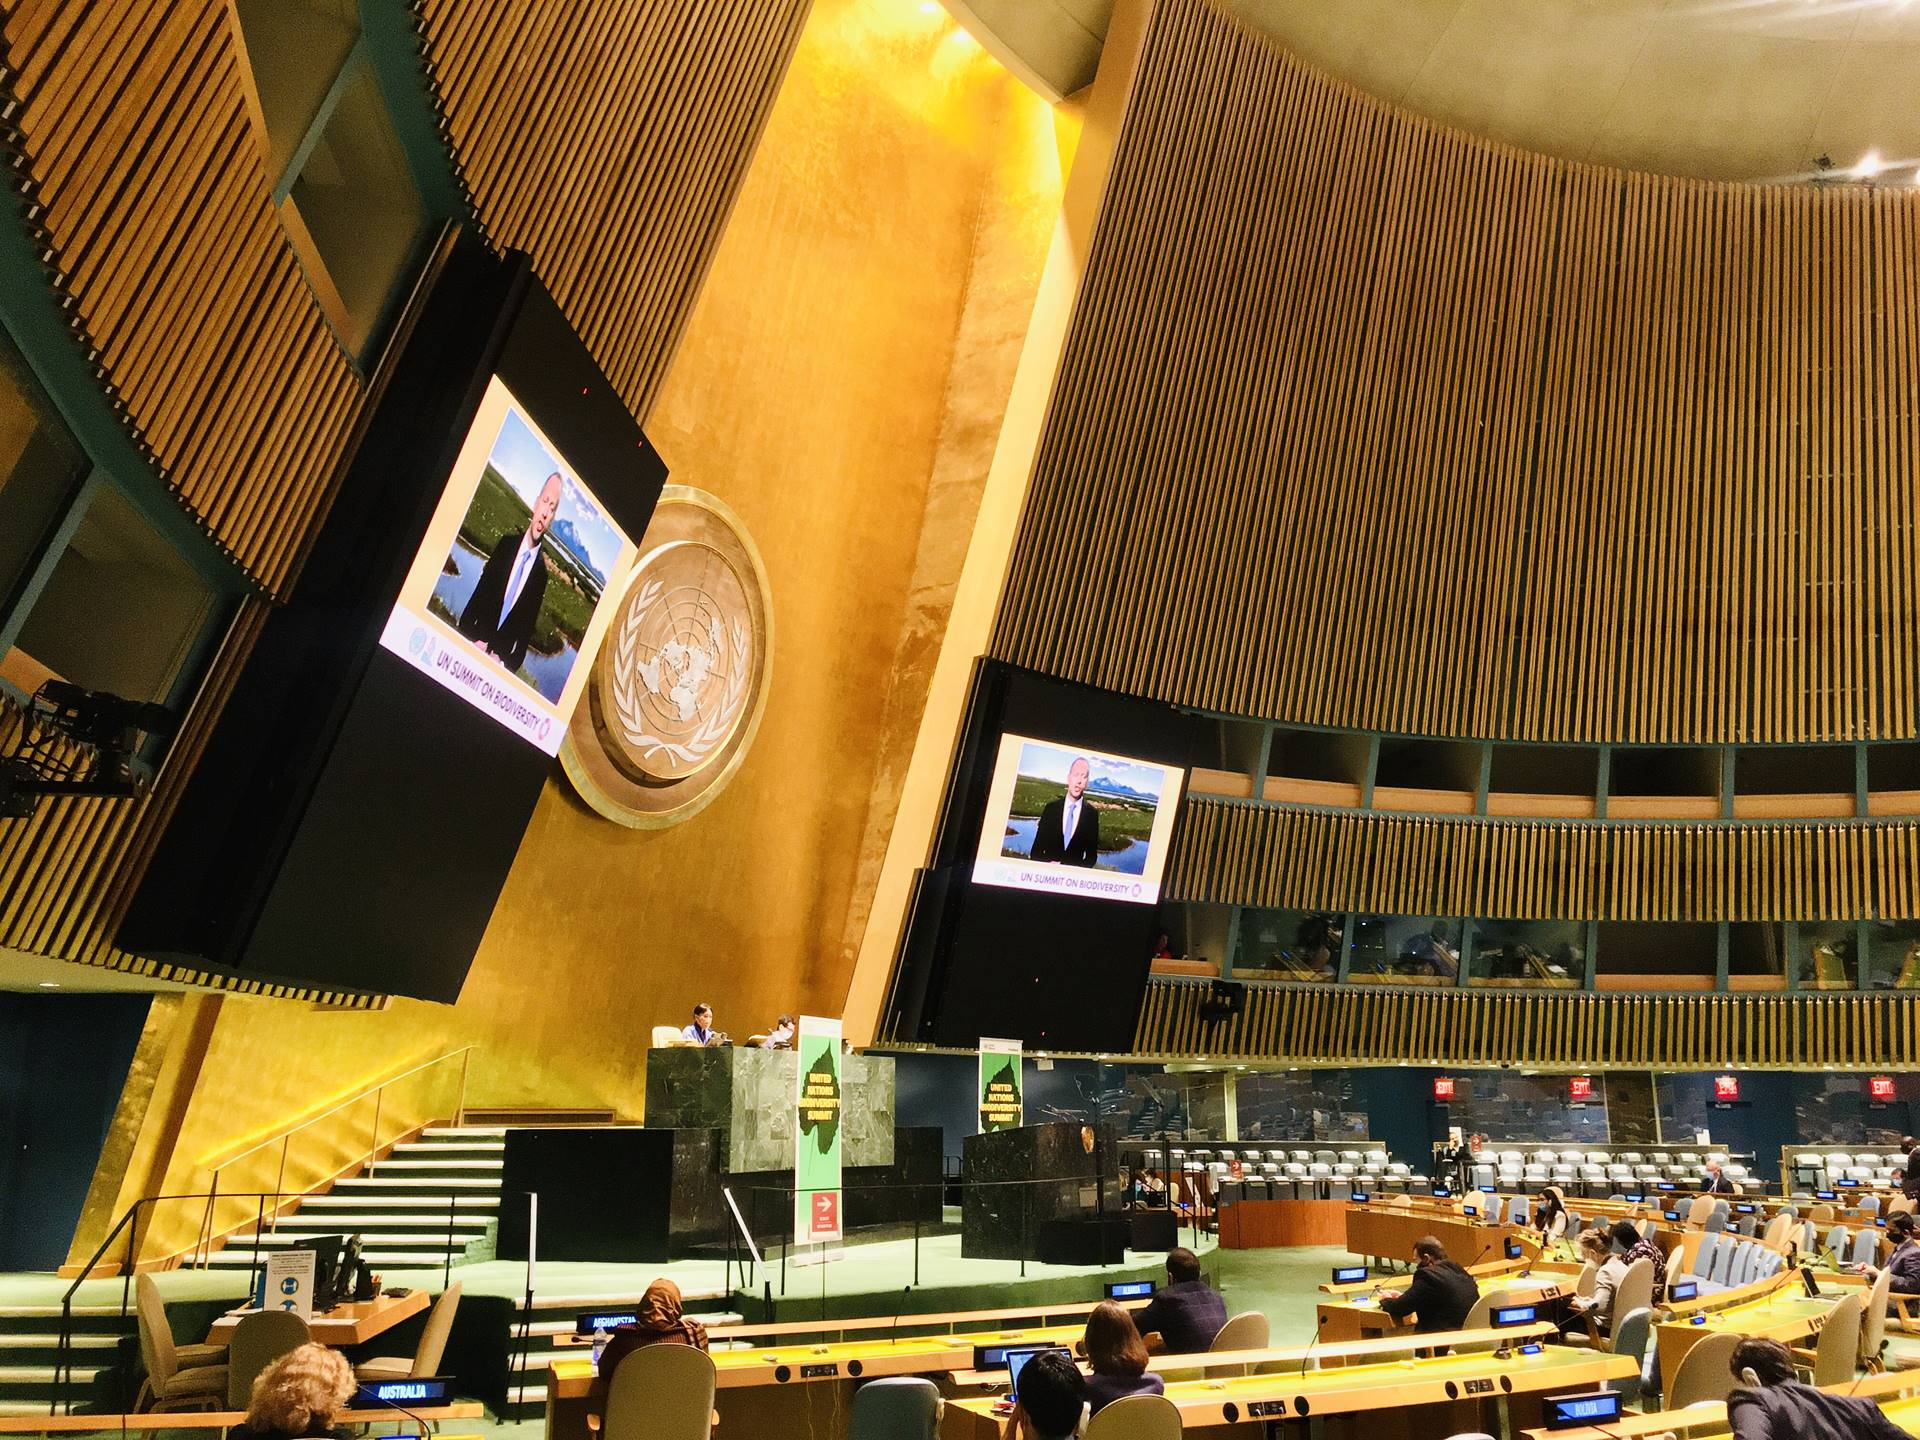 The Ministers video address was played in the main room of the General Assembly.  - mynd